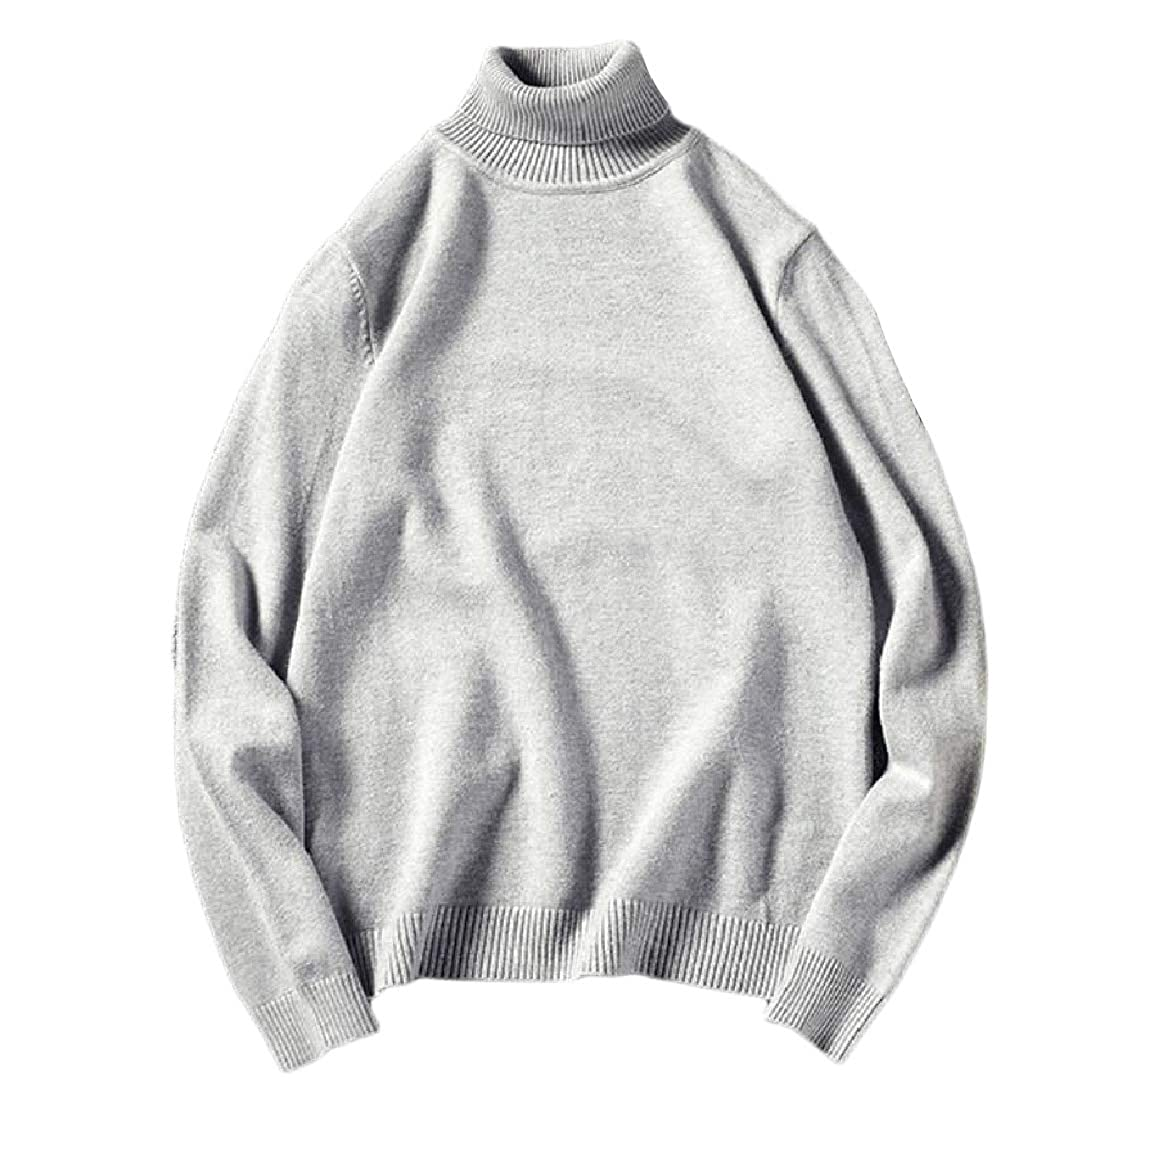 YUNY Mens Solid Plus-Size Warm Knit Ribbed Slim Fit Sweater Pullover Light Grey 4XL